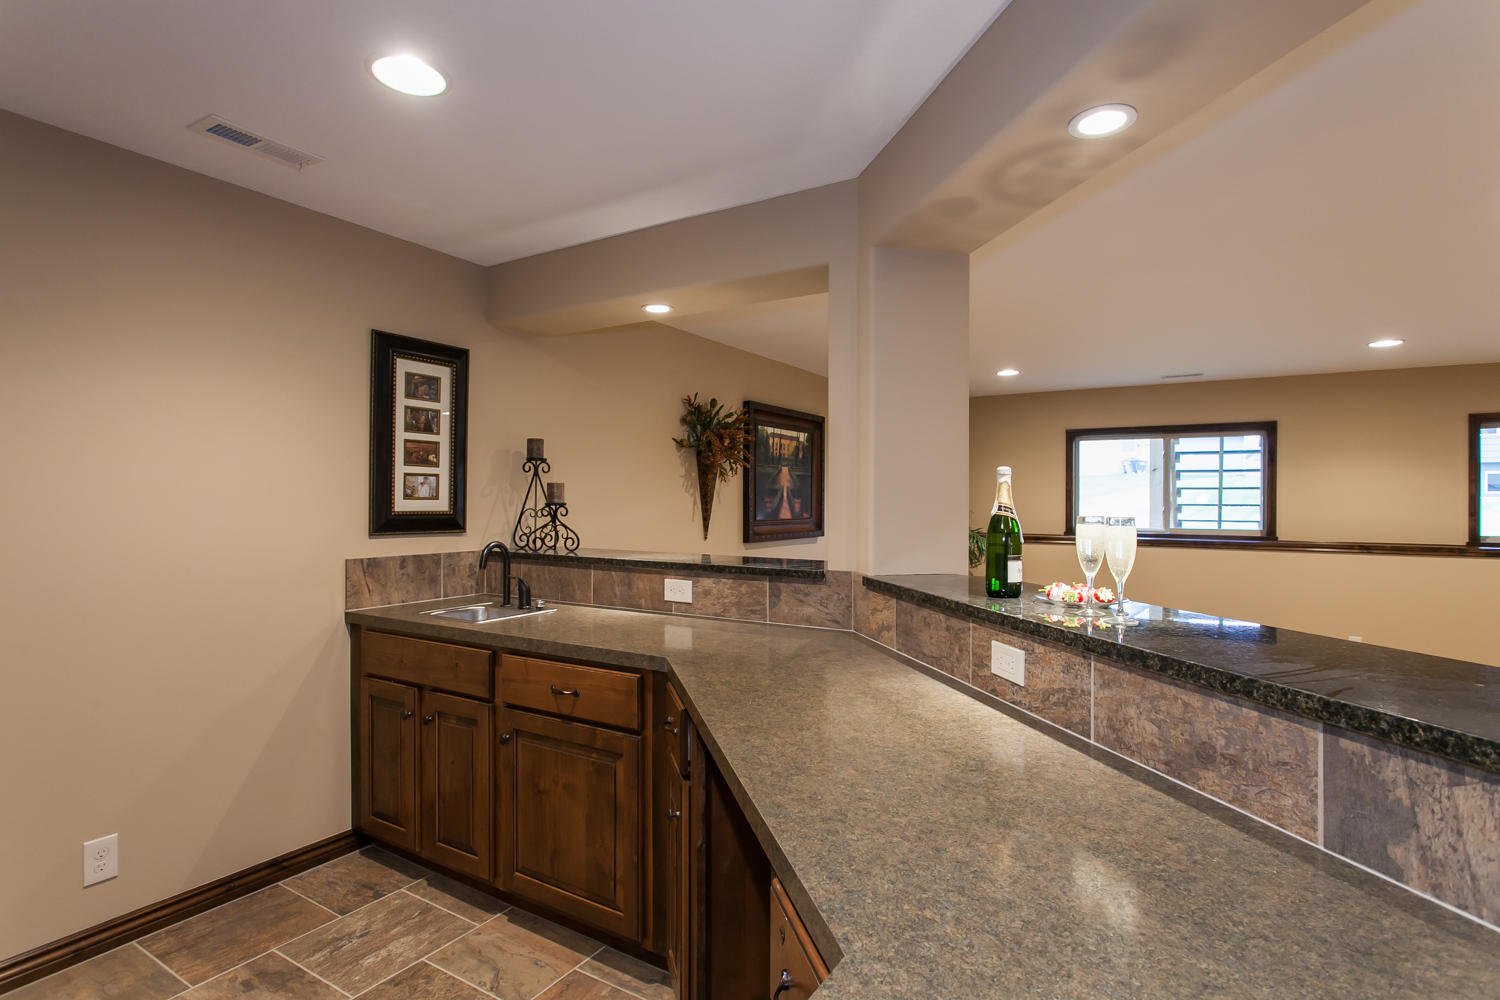 14706 W Valley Hi-large-024-24-Wet Bar-1500x1000-72dpi.jpg